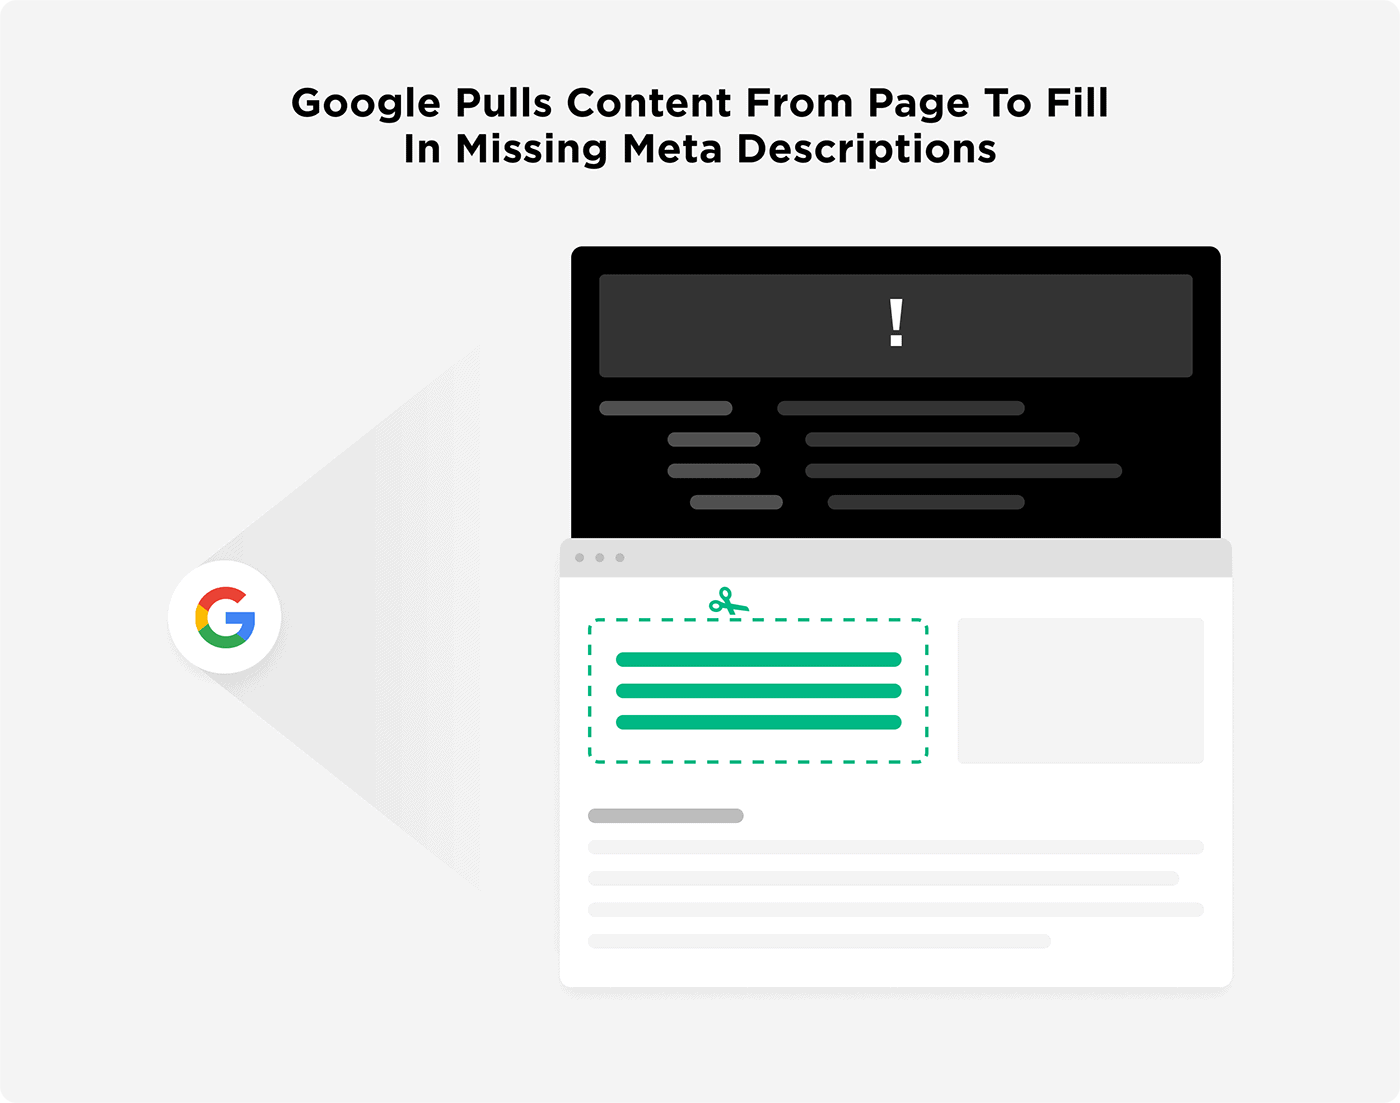 Google pulls content from page to fill in missing meta descriptions